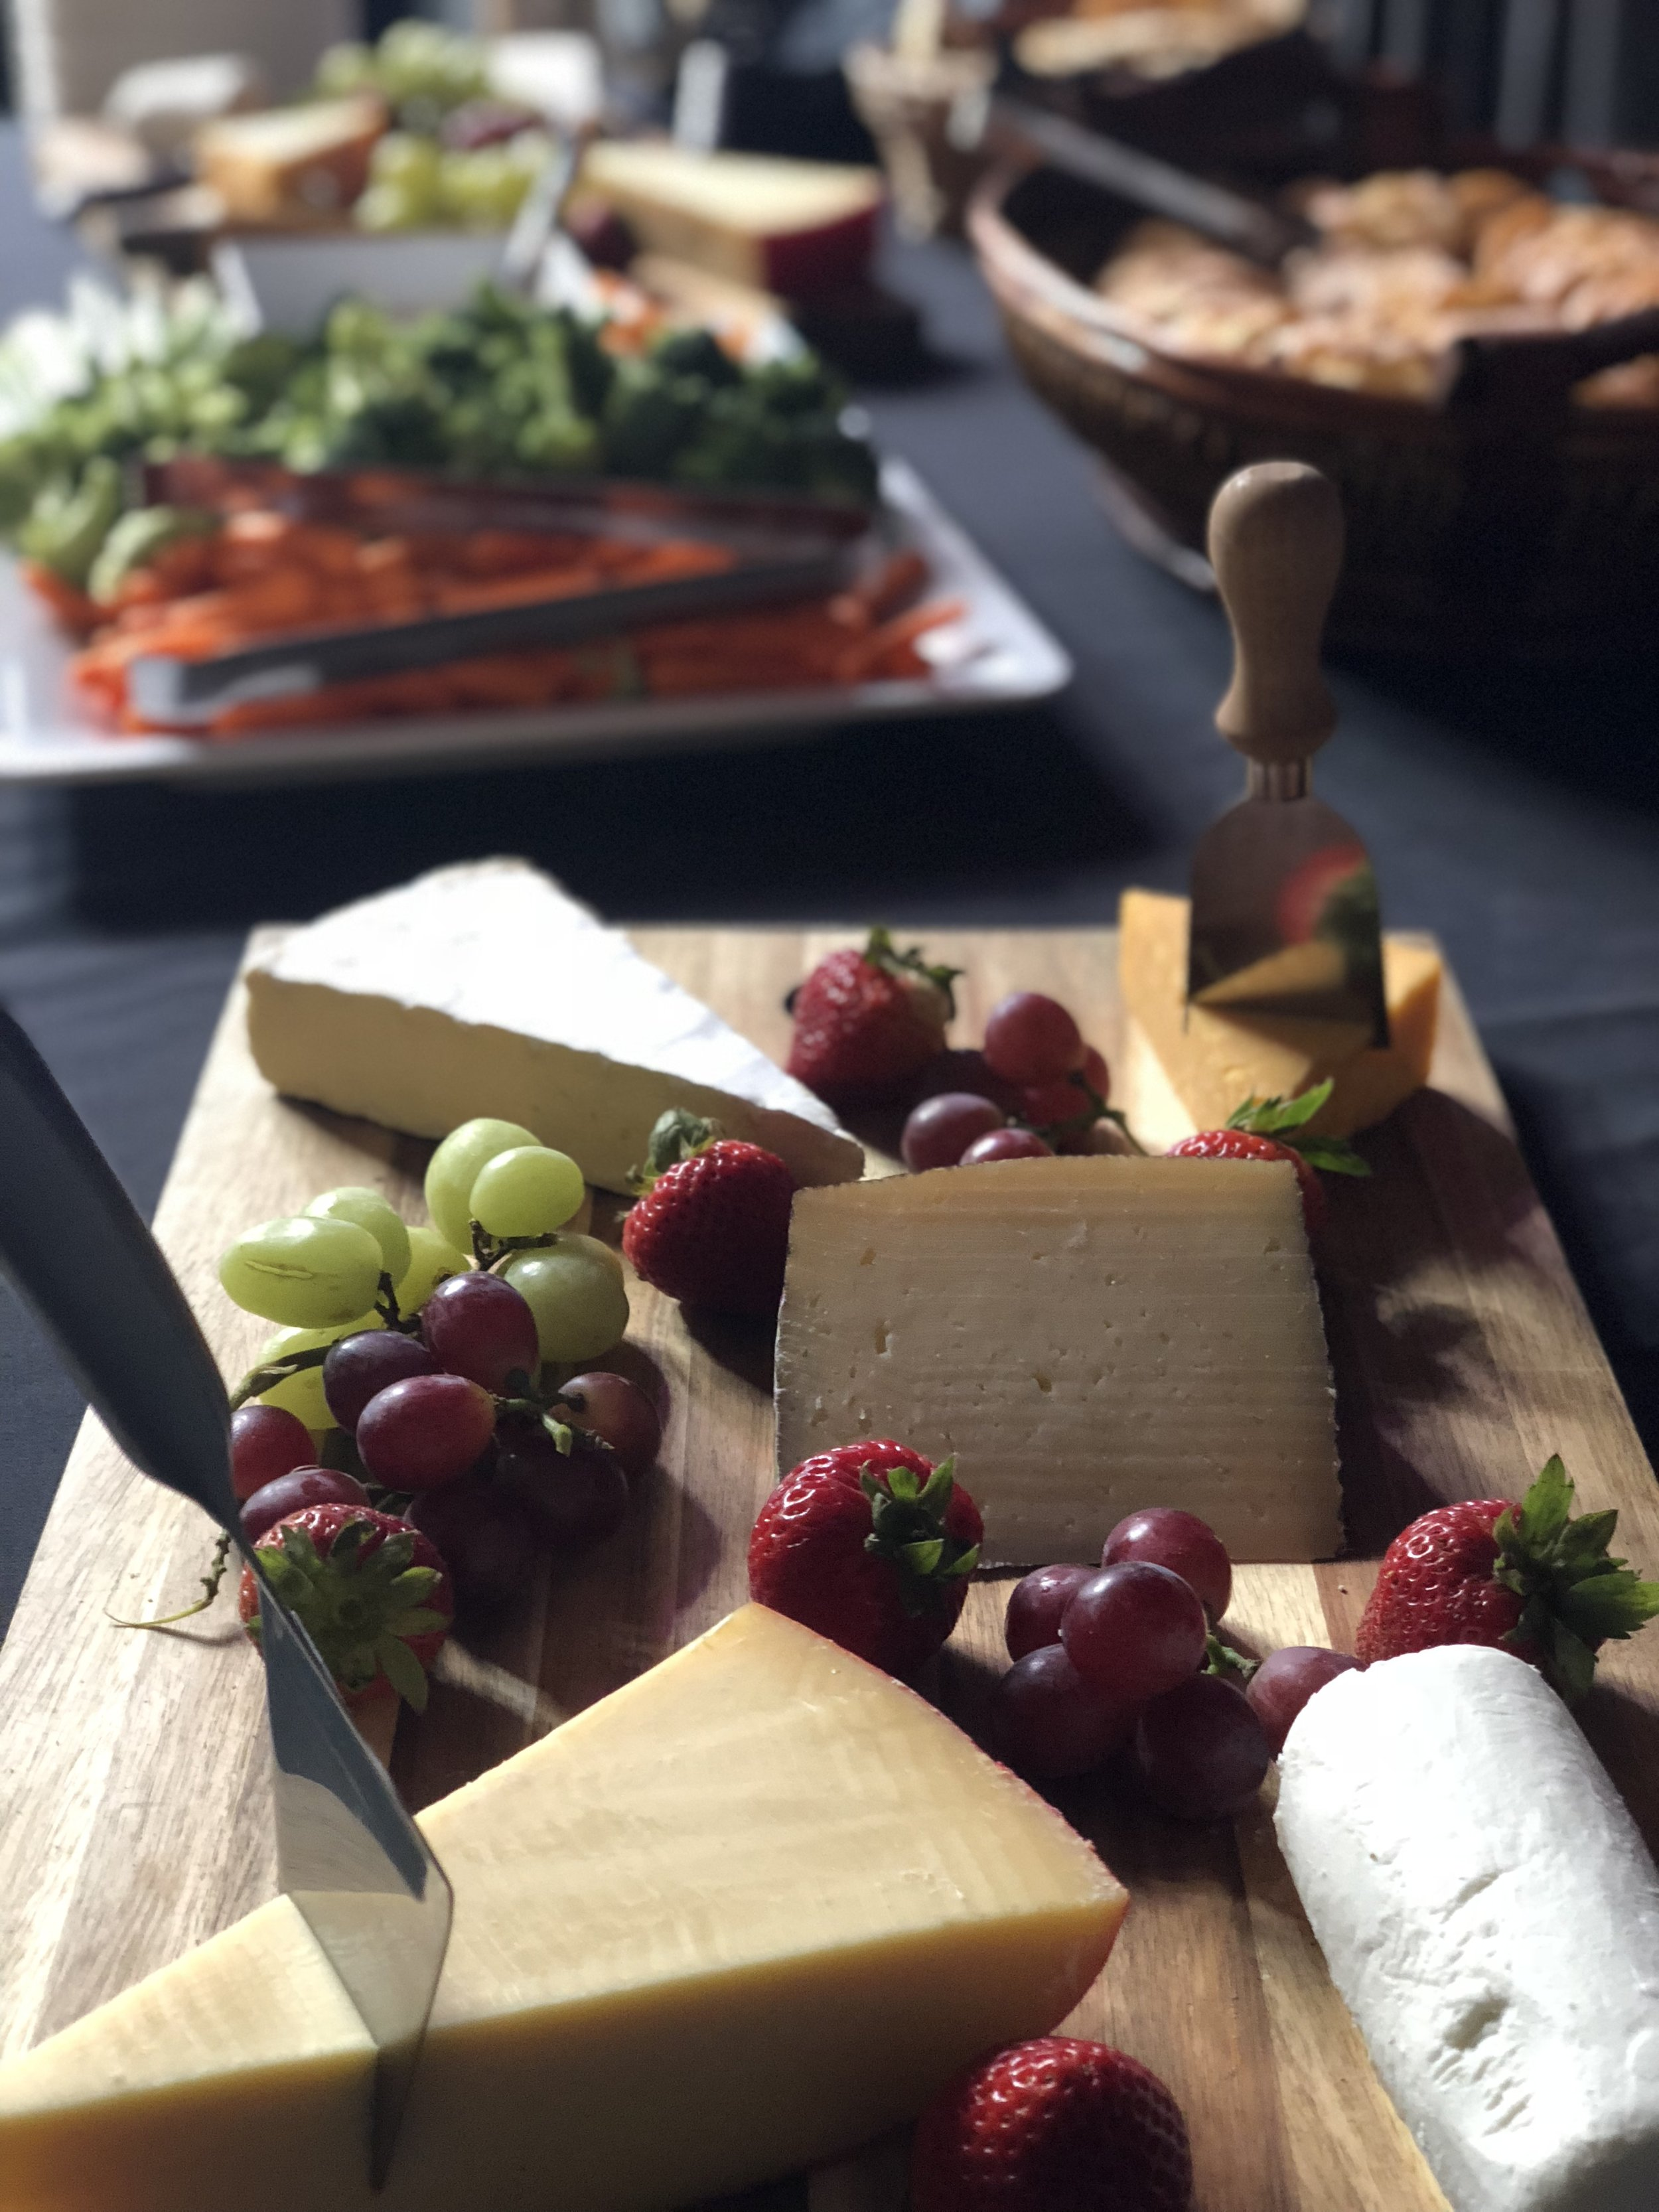 Private Event Food - Artisan Cheese, Charcuterie & Vegetable Platter